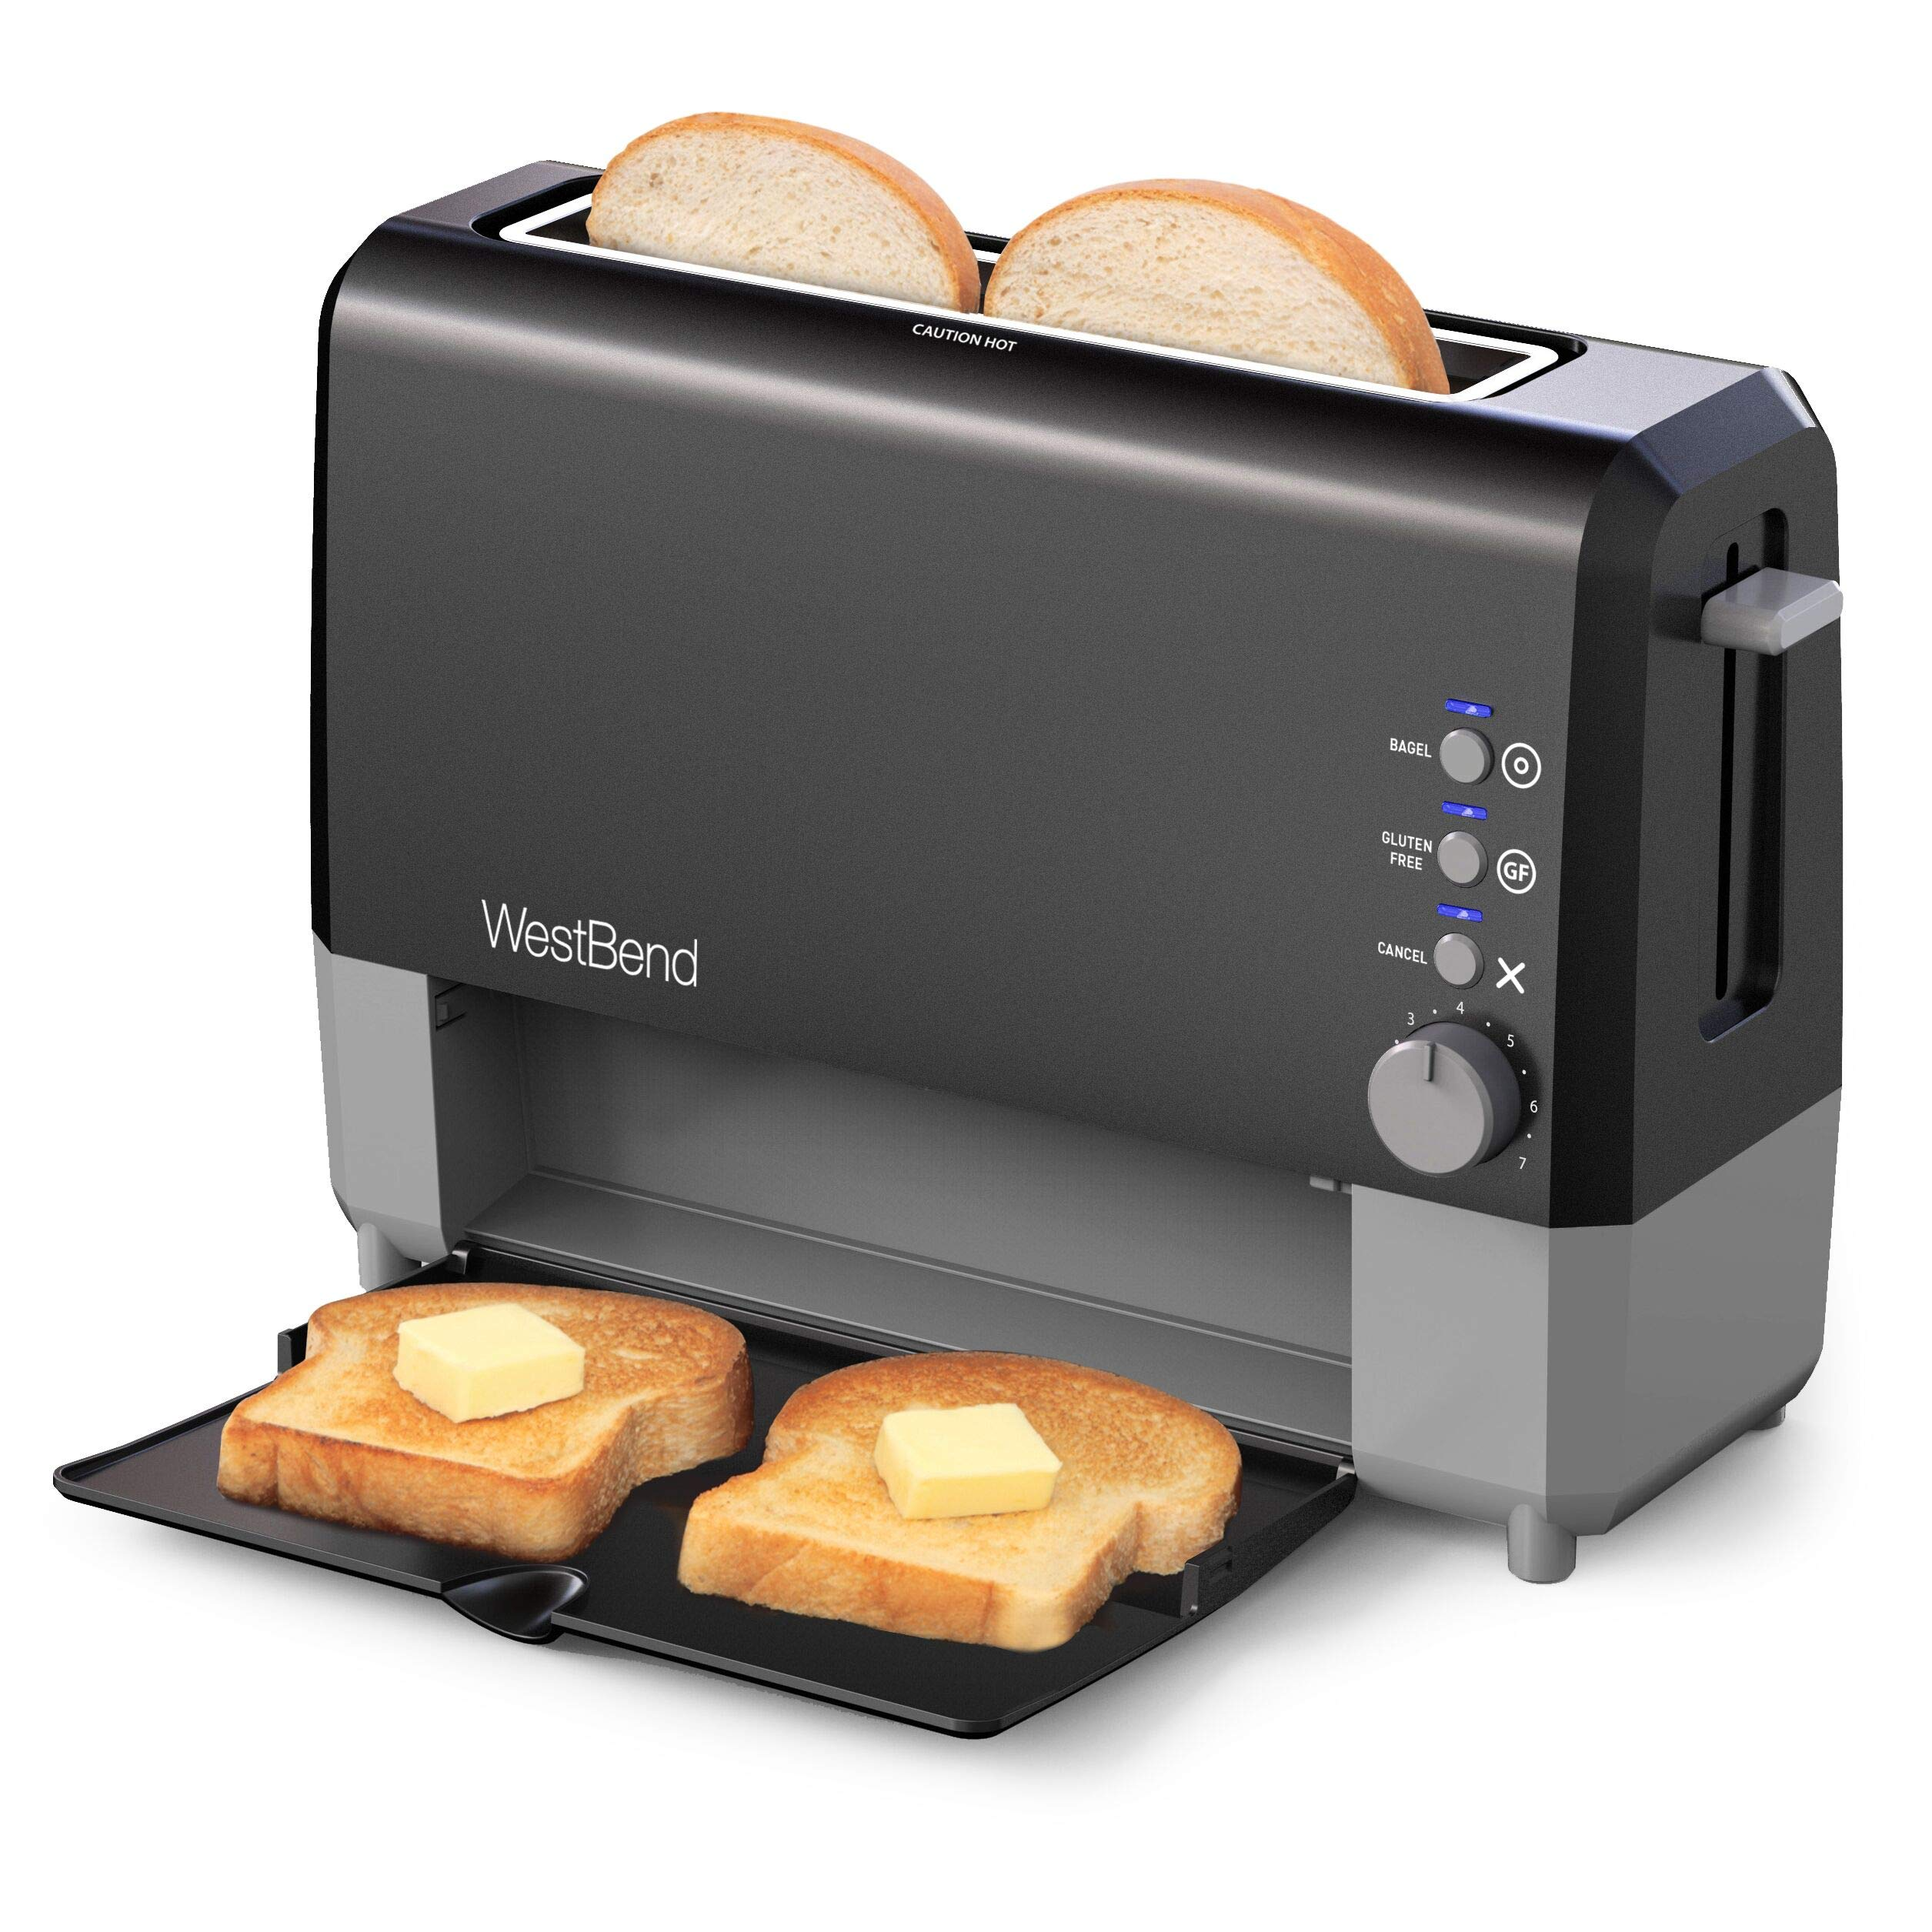 West Bend 77224 Quik Serve Slide Through Wide Slot Toaster with Cool Touch Exterior and Removable Crumb Tray, 2-Slice, Black